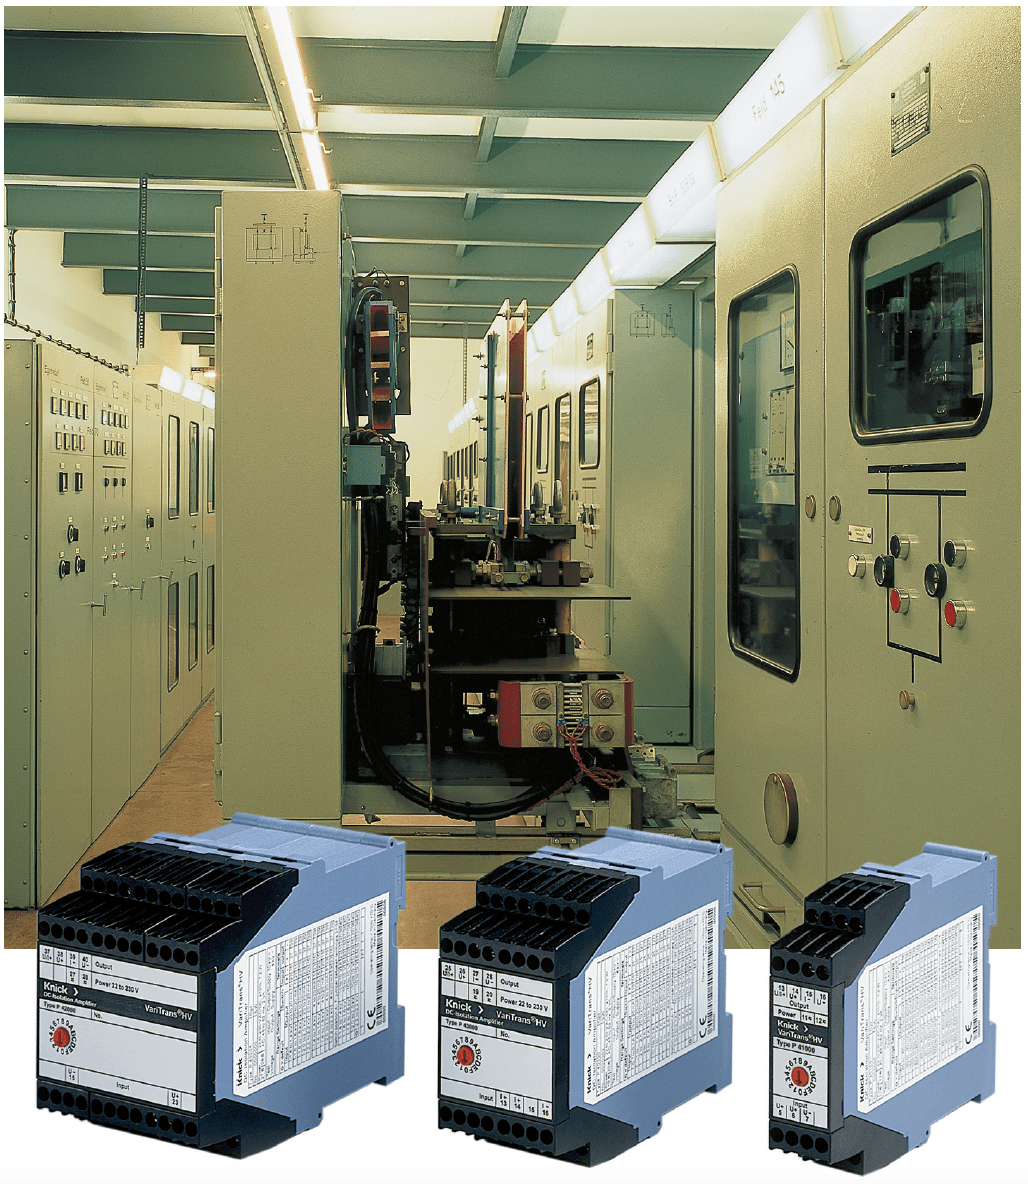 Switchgear for traction power supply with current and voltage measurement